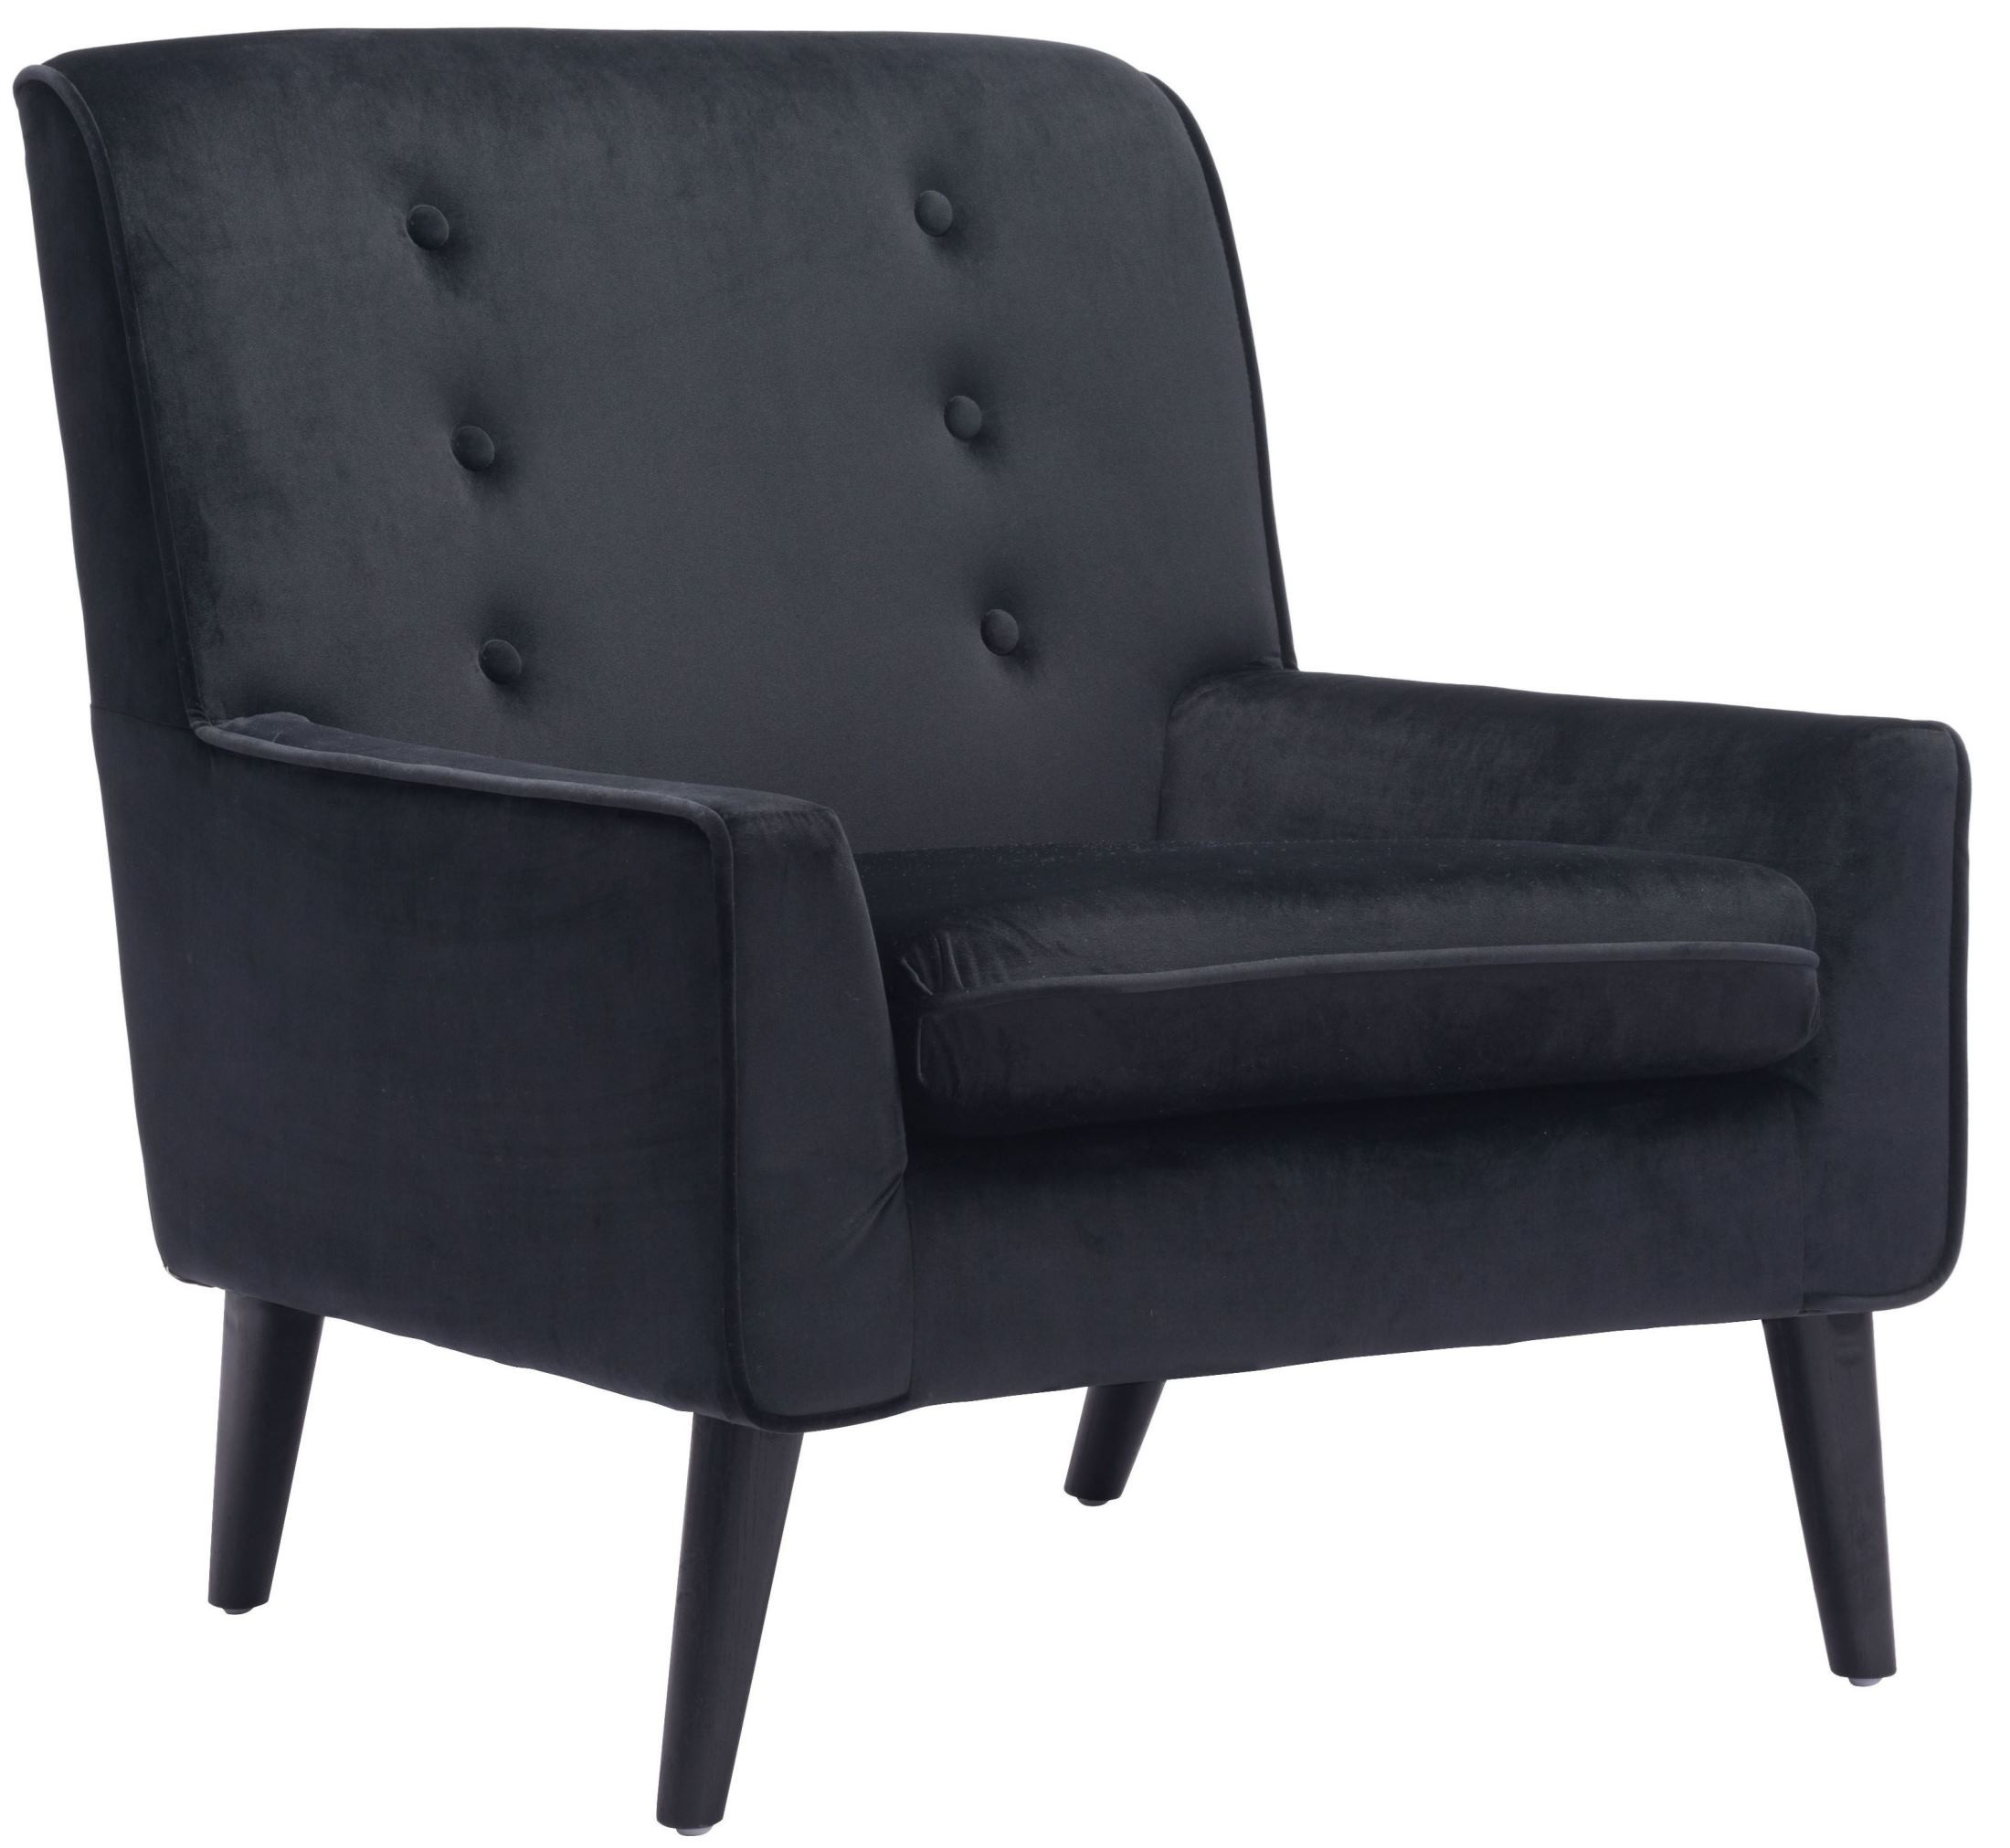 Black Velvet Chair Coney Black Velvet Arm Chair From Zuo Mod 100224